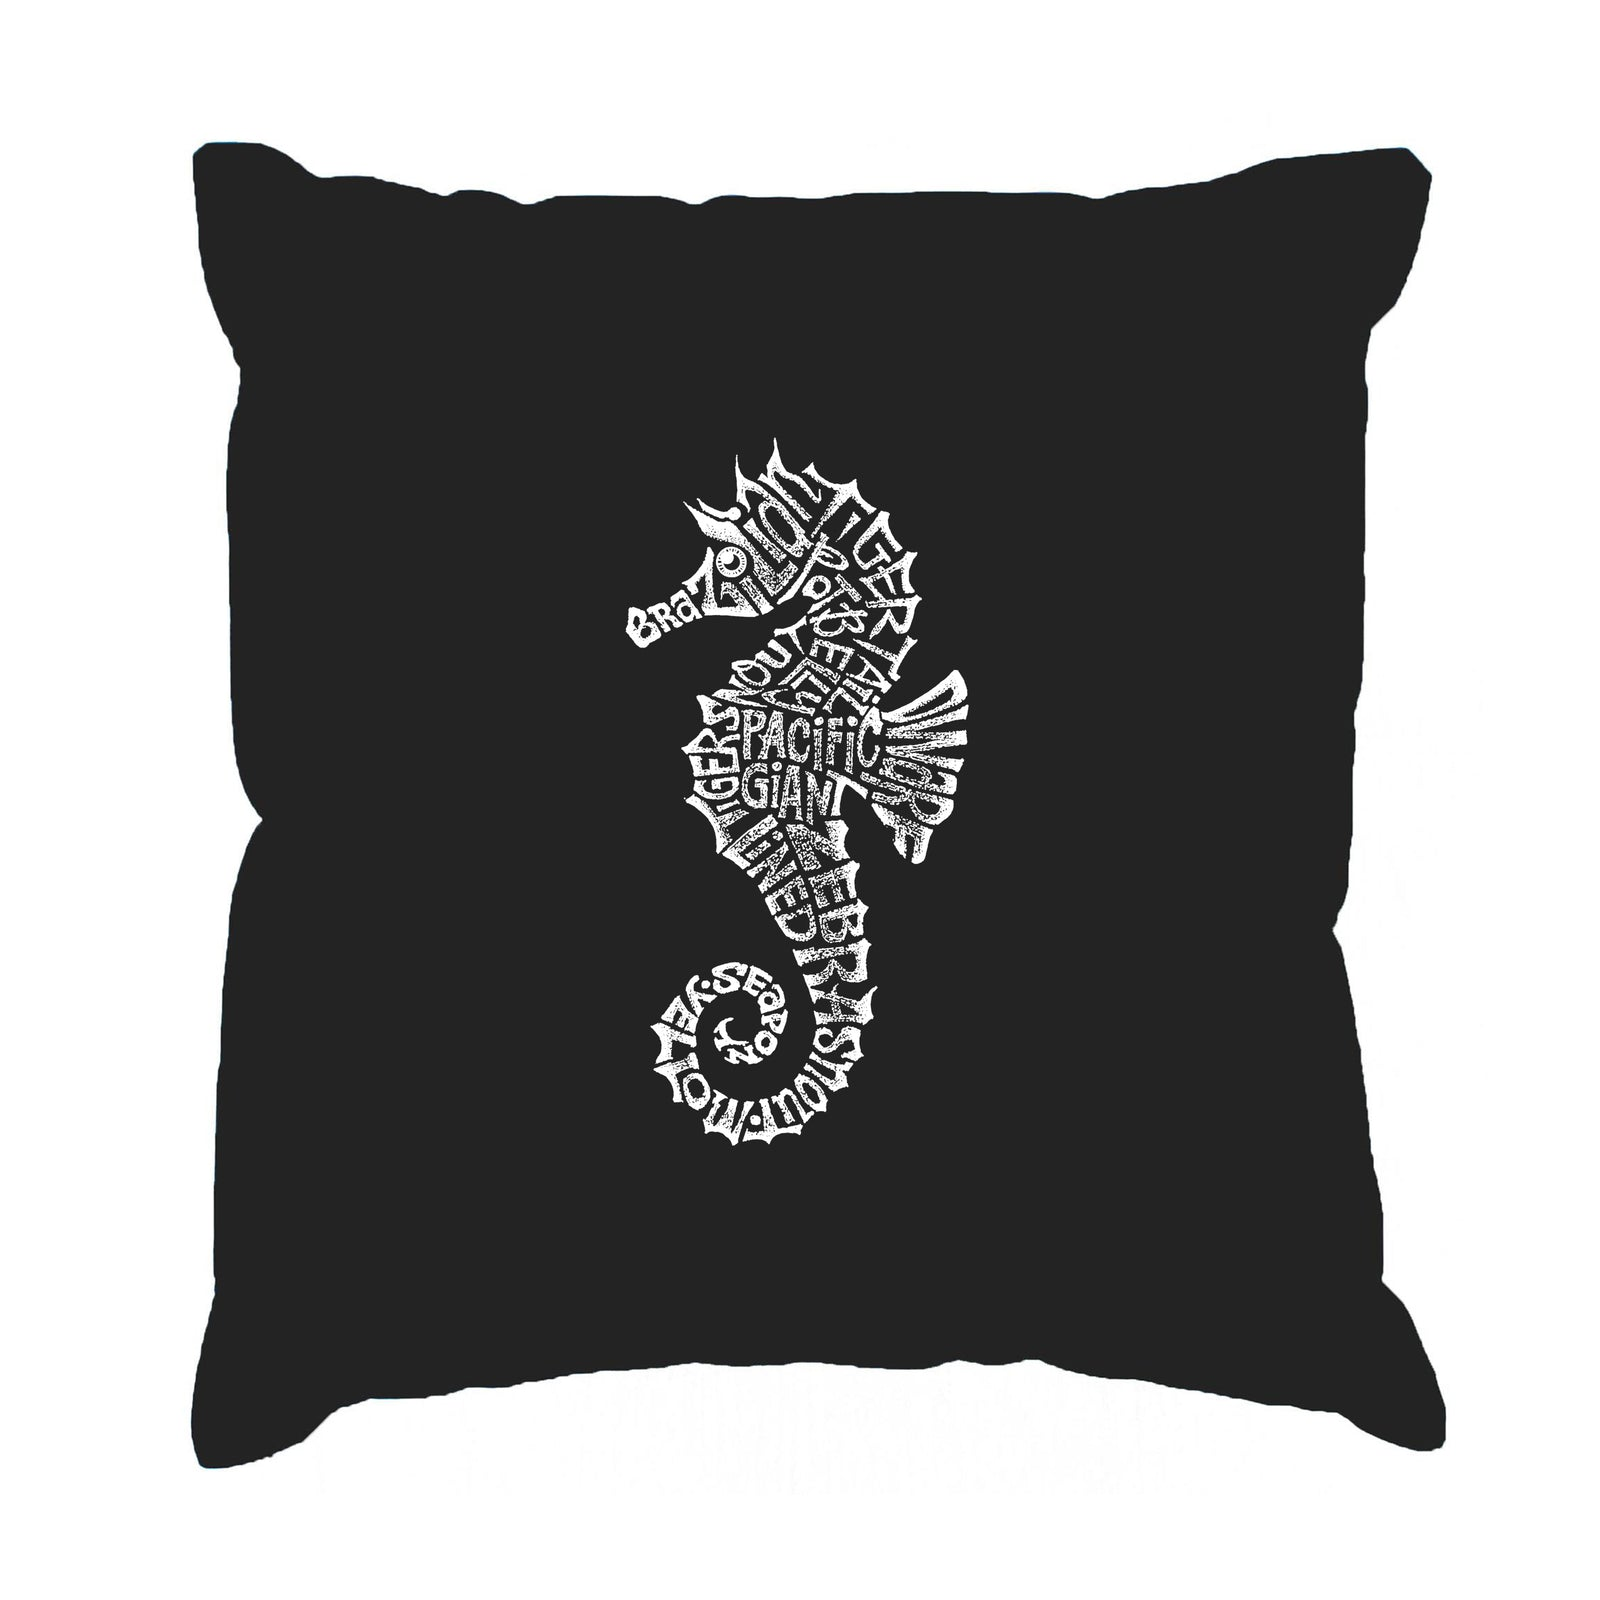 Throw Pillow Cover - Word Art - Types of Seahorse